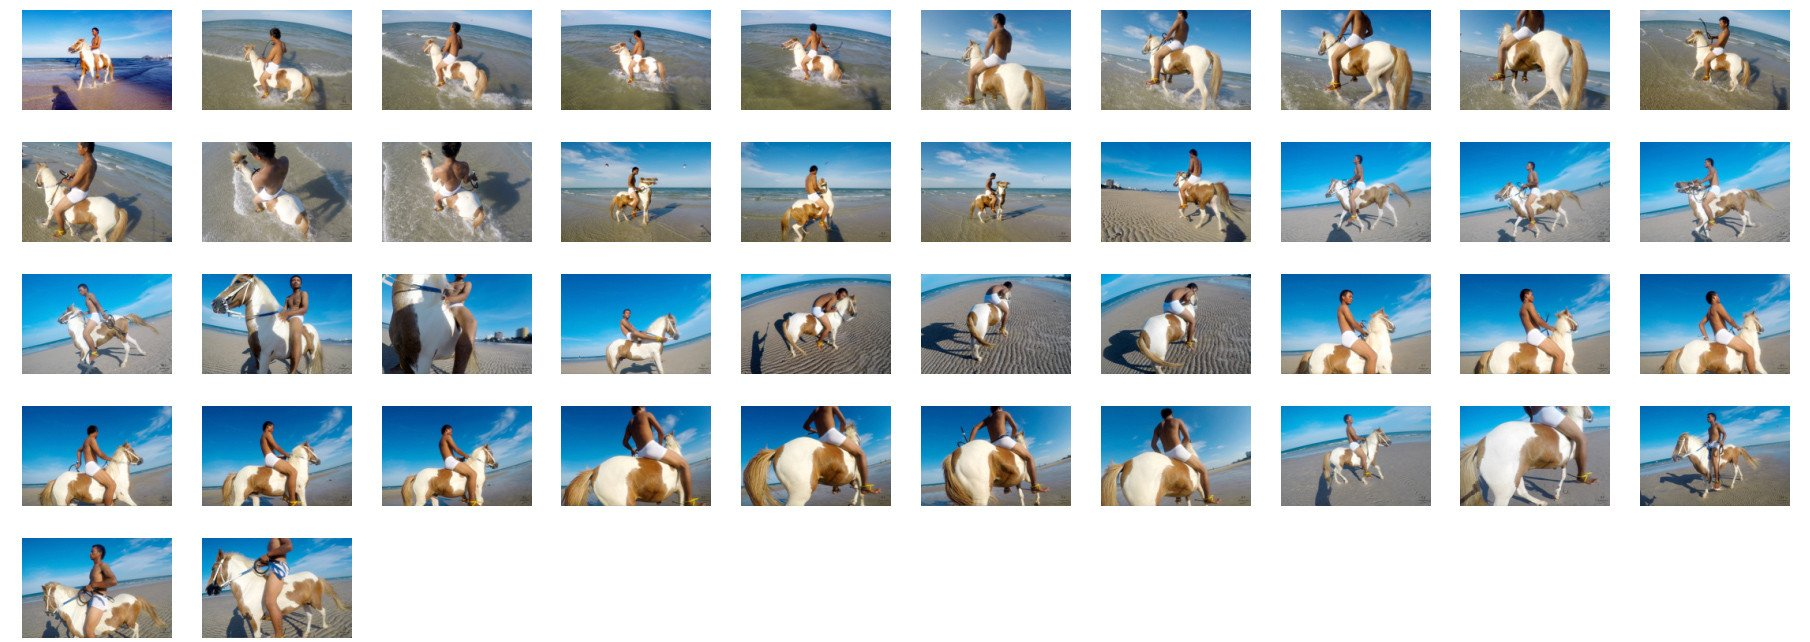 Chai S1 Riding in White Speedos on Pony, Part 1 - Riding.Vision